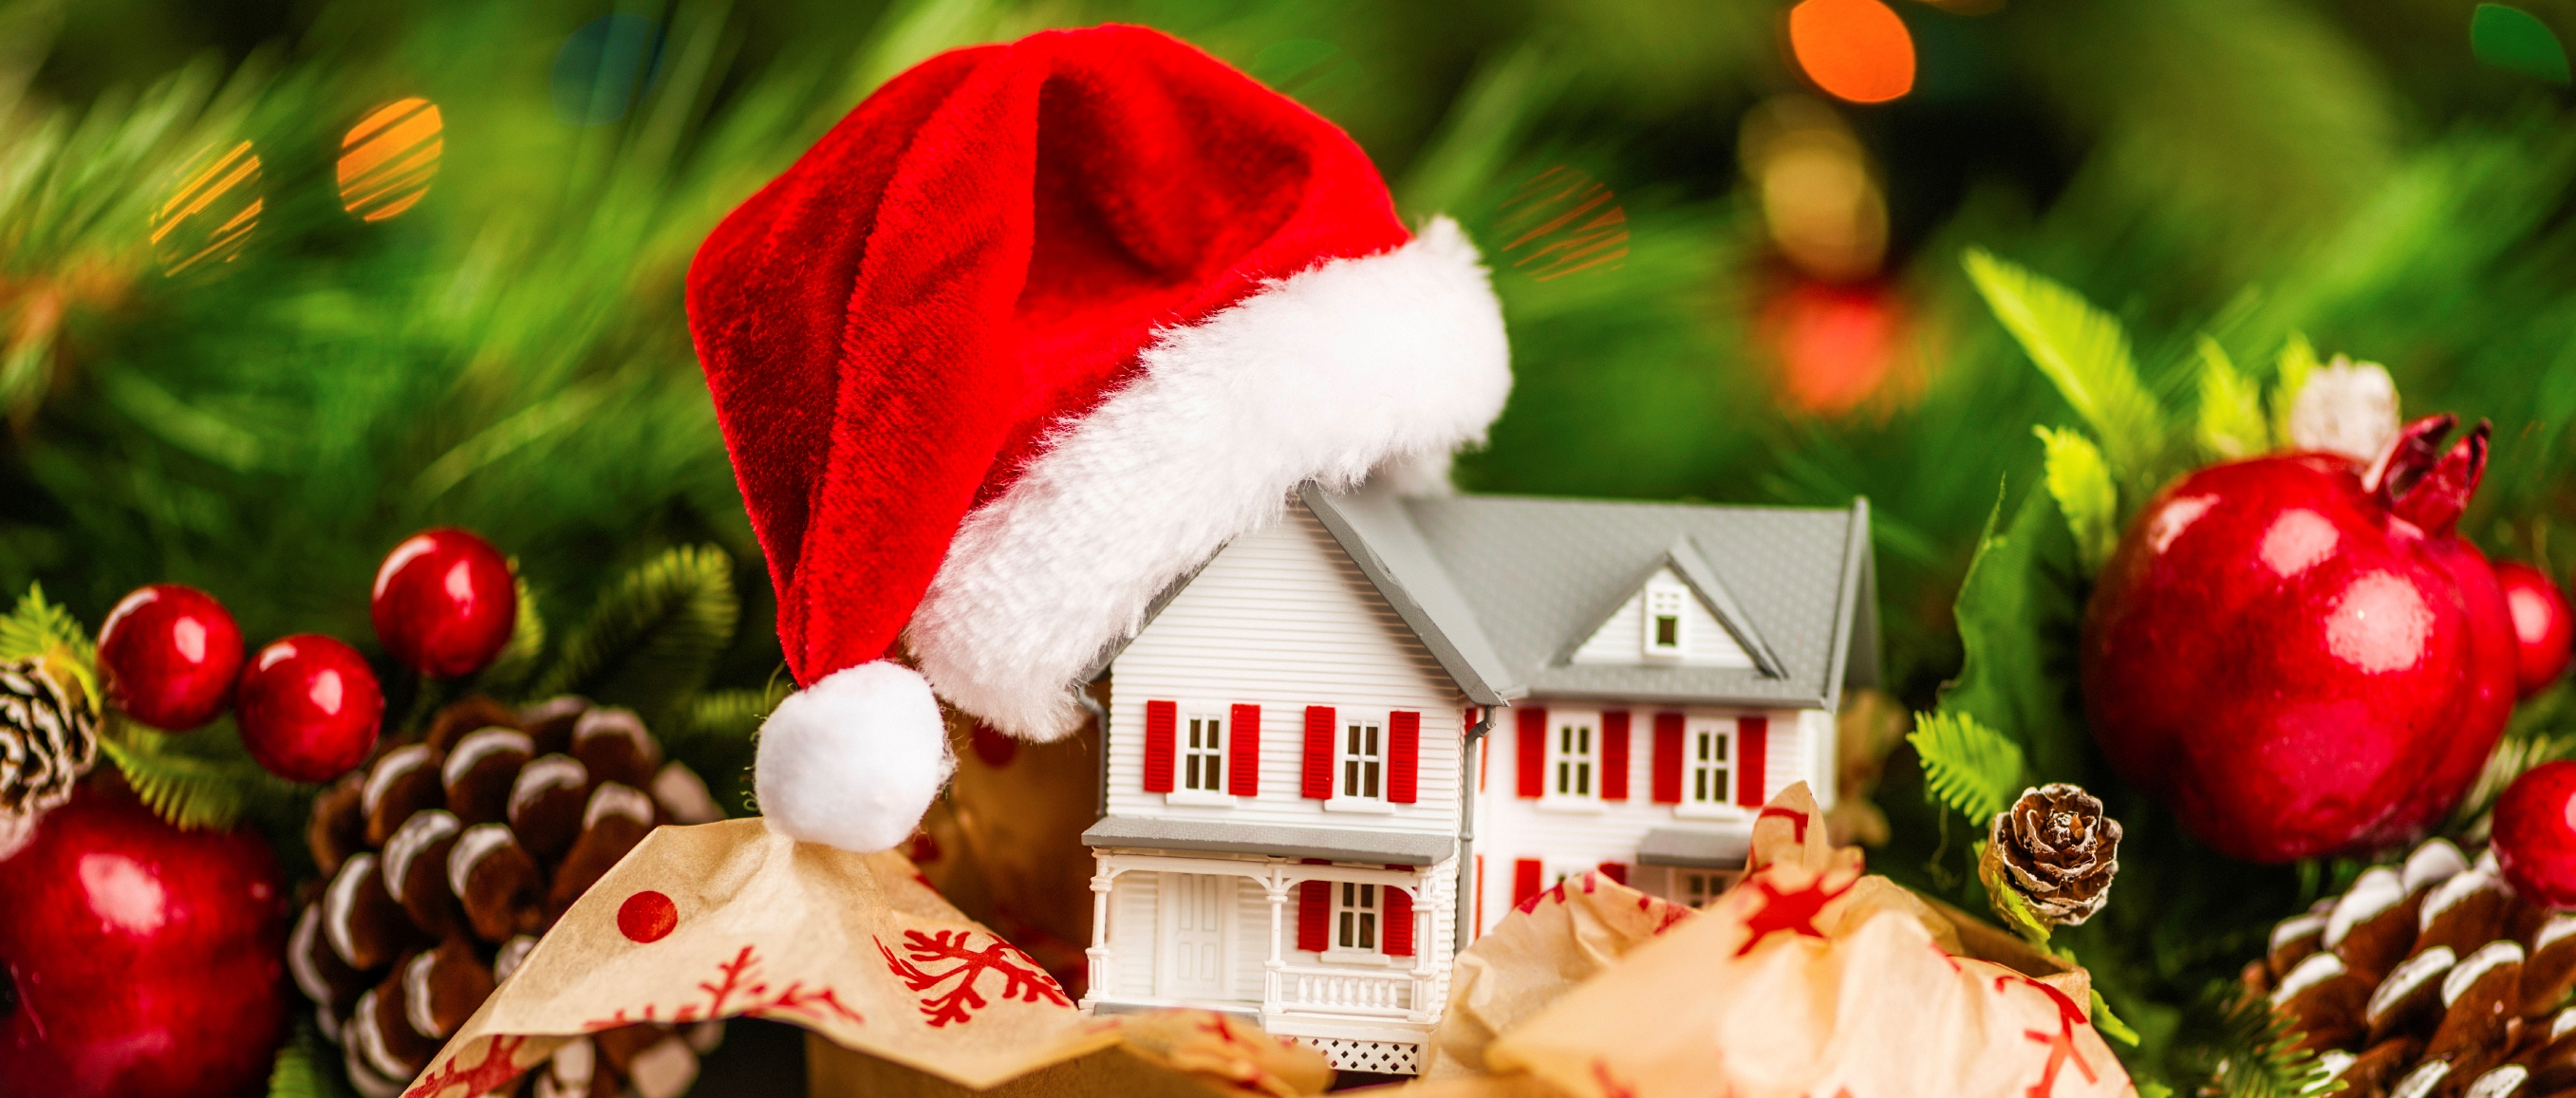 5 Reasons To Buy A Home During The Holidays!